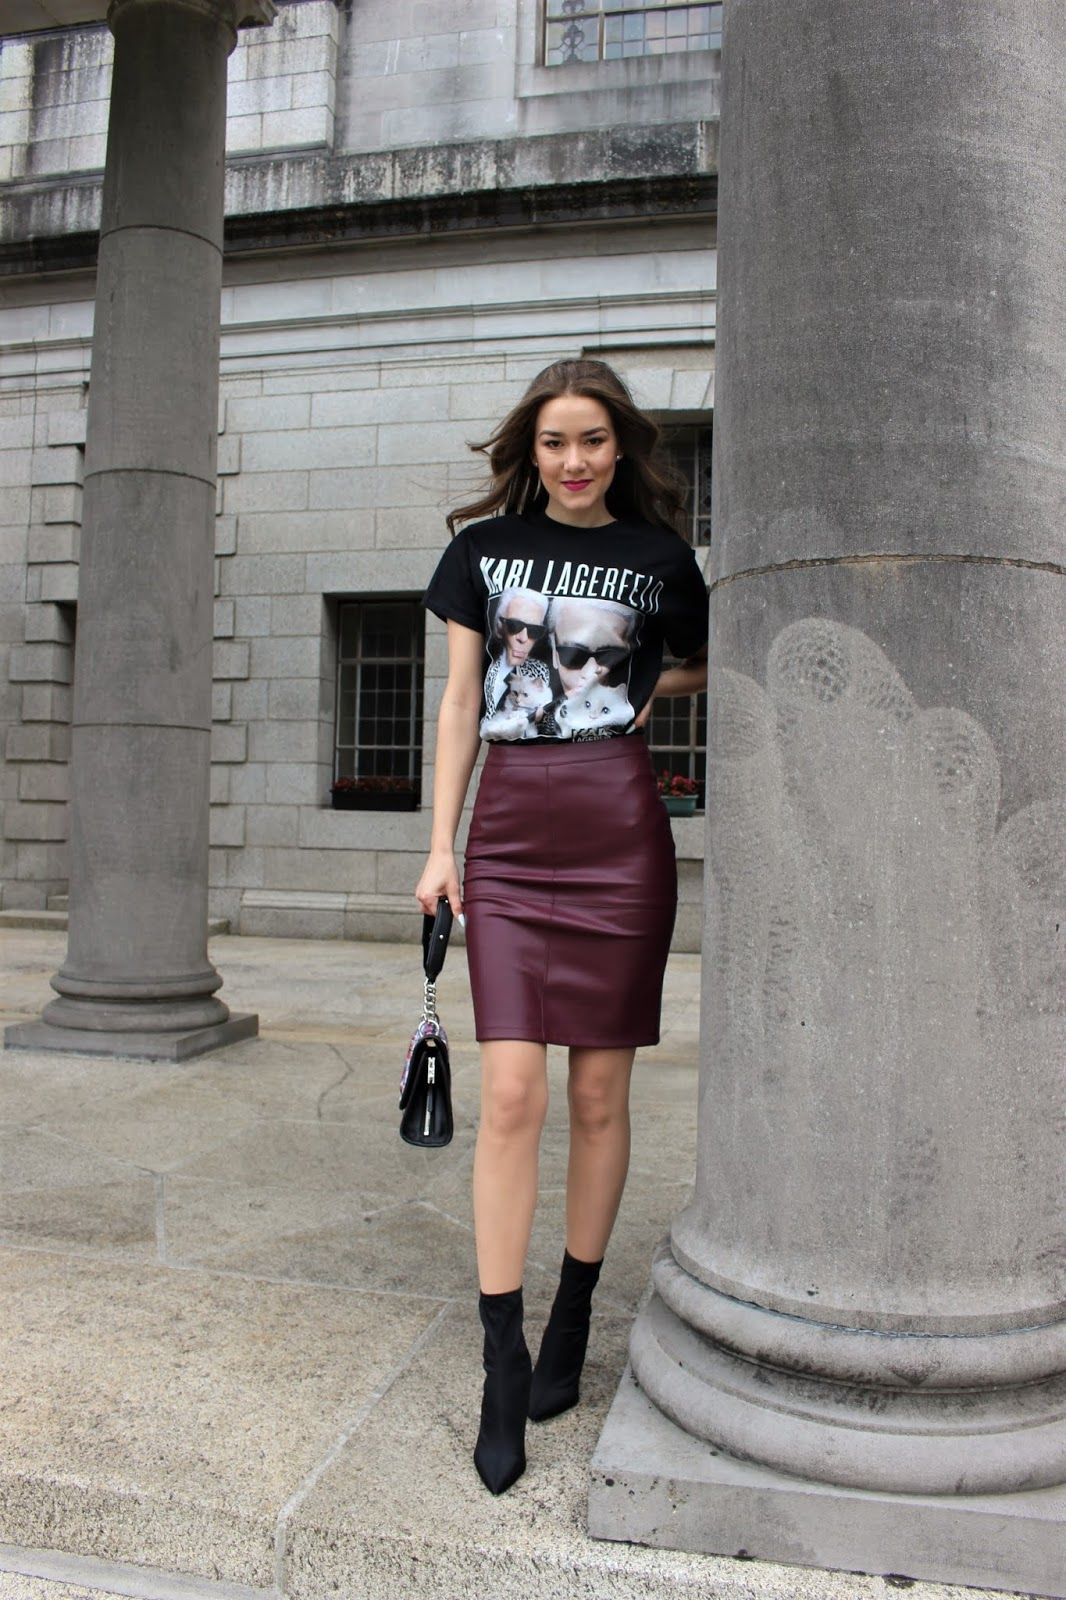 8e5f31ea44 Autumn Elegant and Edgy Outfit - Homage T-Shirt, Leather Skirt and Sock  Boots - Sinnamona